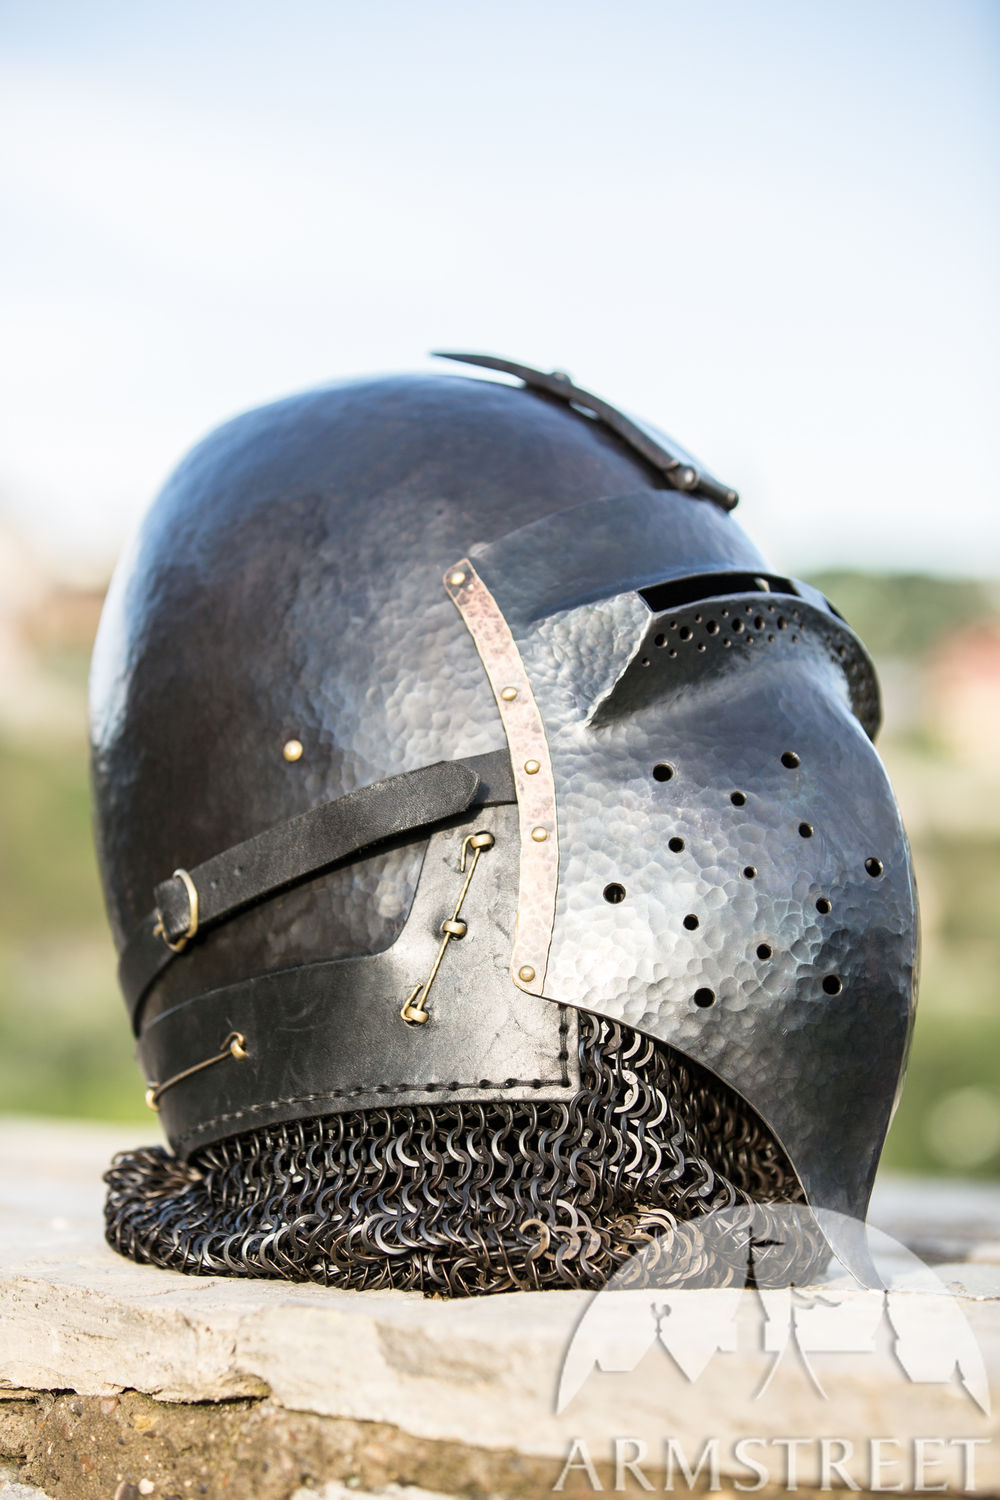 """The Wayward Knight"" Blackened Klappvisor Bascinet XIV century helmet with visor"